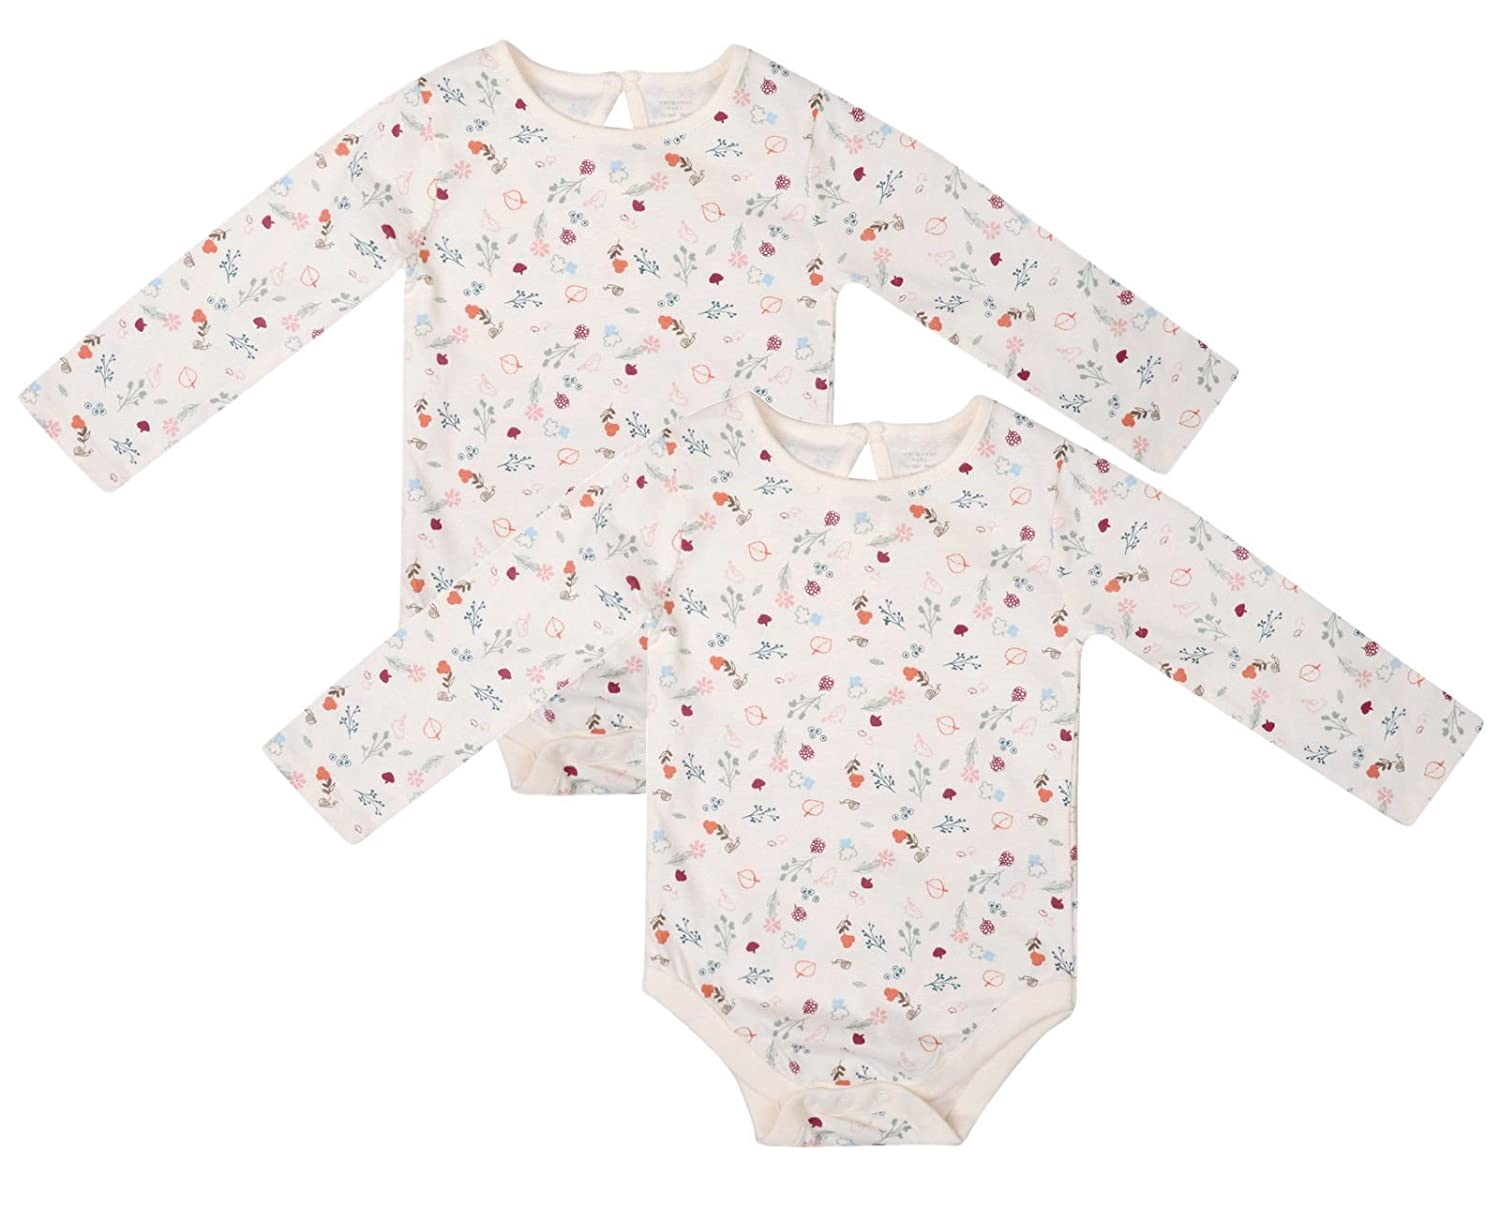 Ex UK Store Baby Girls 2 Pack Bodysuits Long Sleeve Floral Print